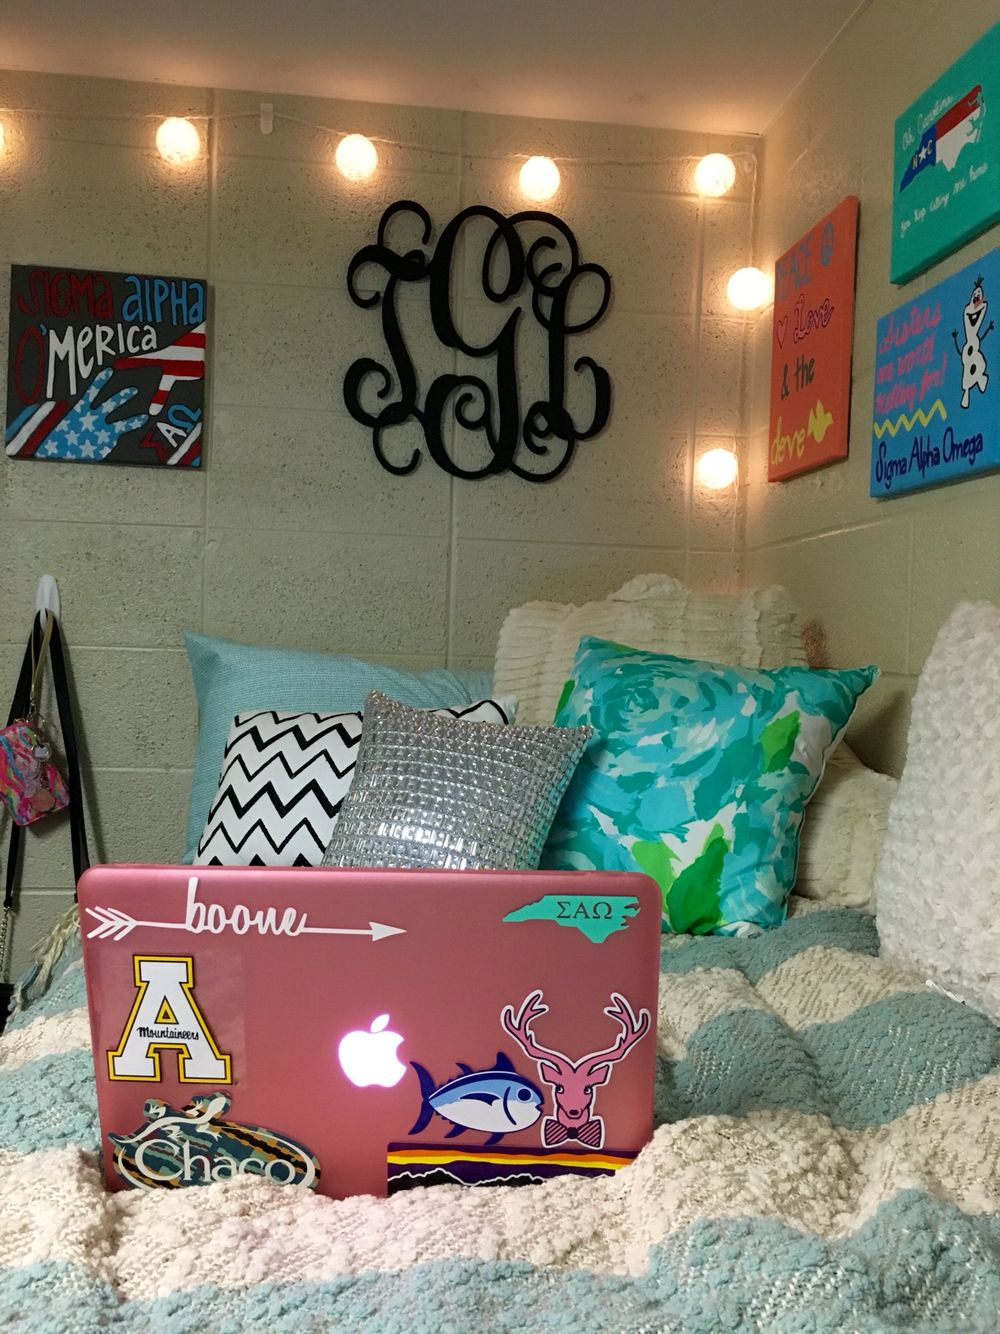 Take A Picture Of A Room And Design It App: My Dorm Room At Appalachian State University! #dorm